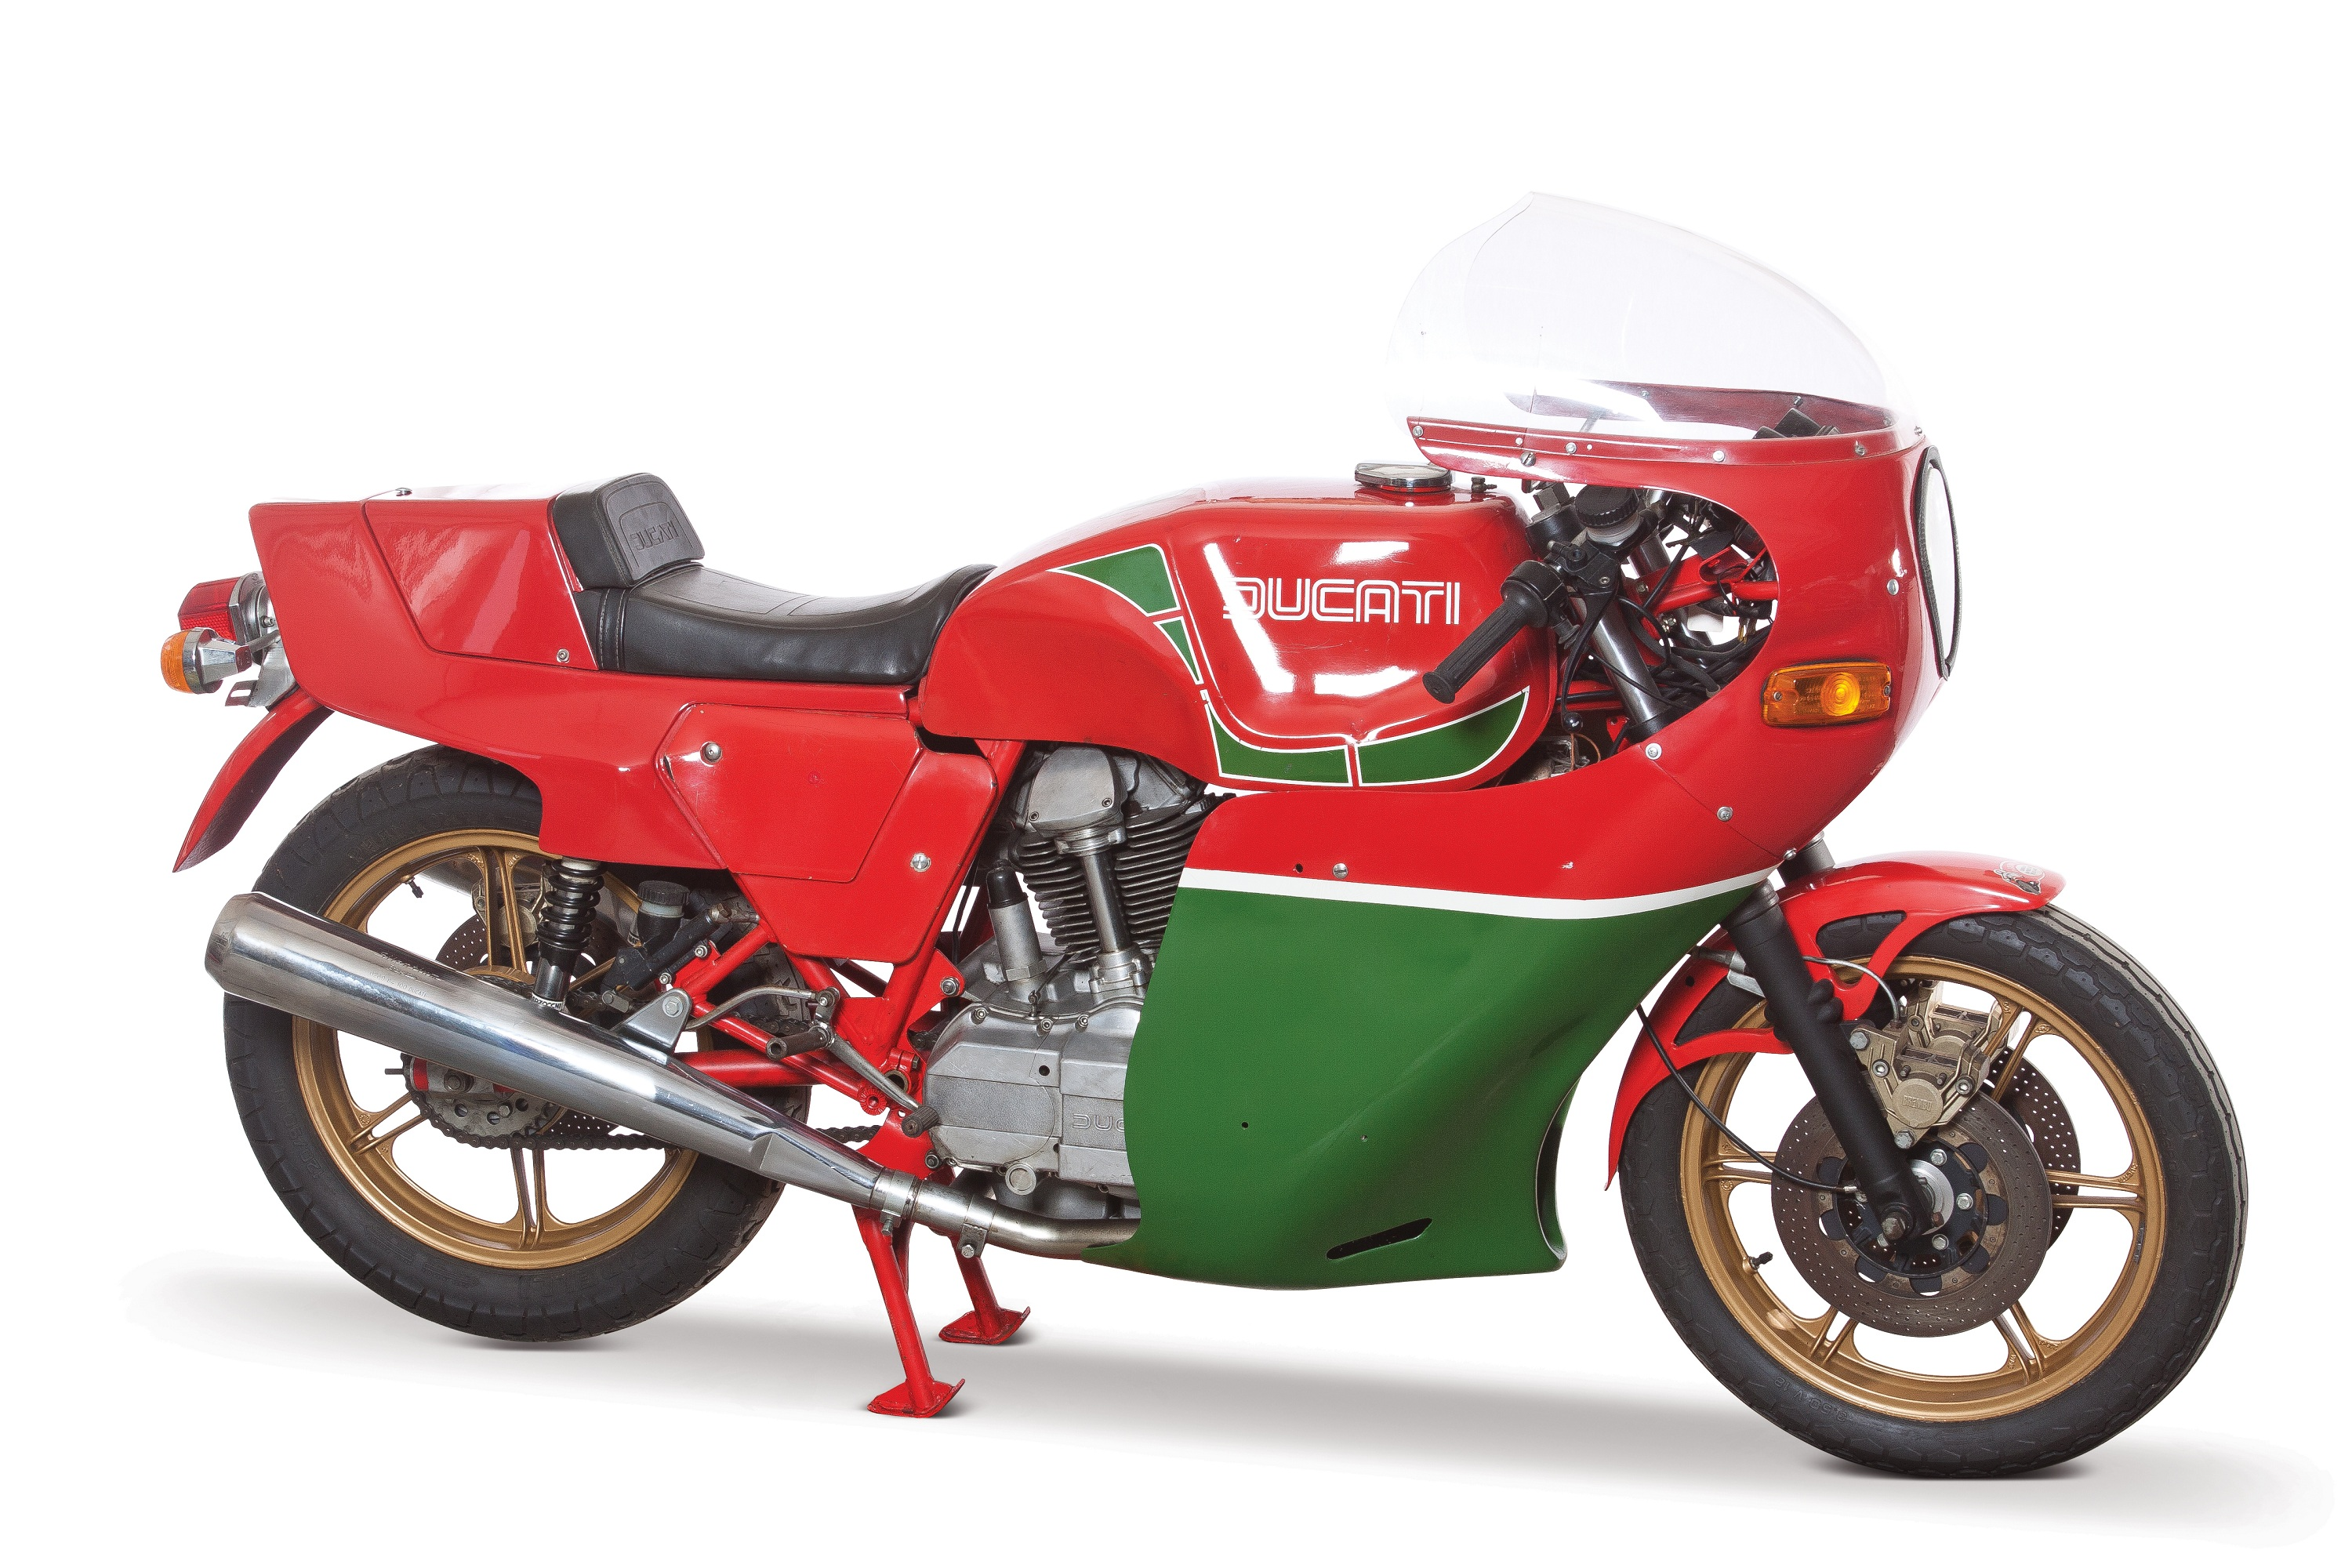 1981 Ducati 900 Mike Hailwood Replica Pictures, Photos, Wallpapers ...